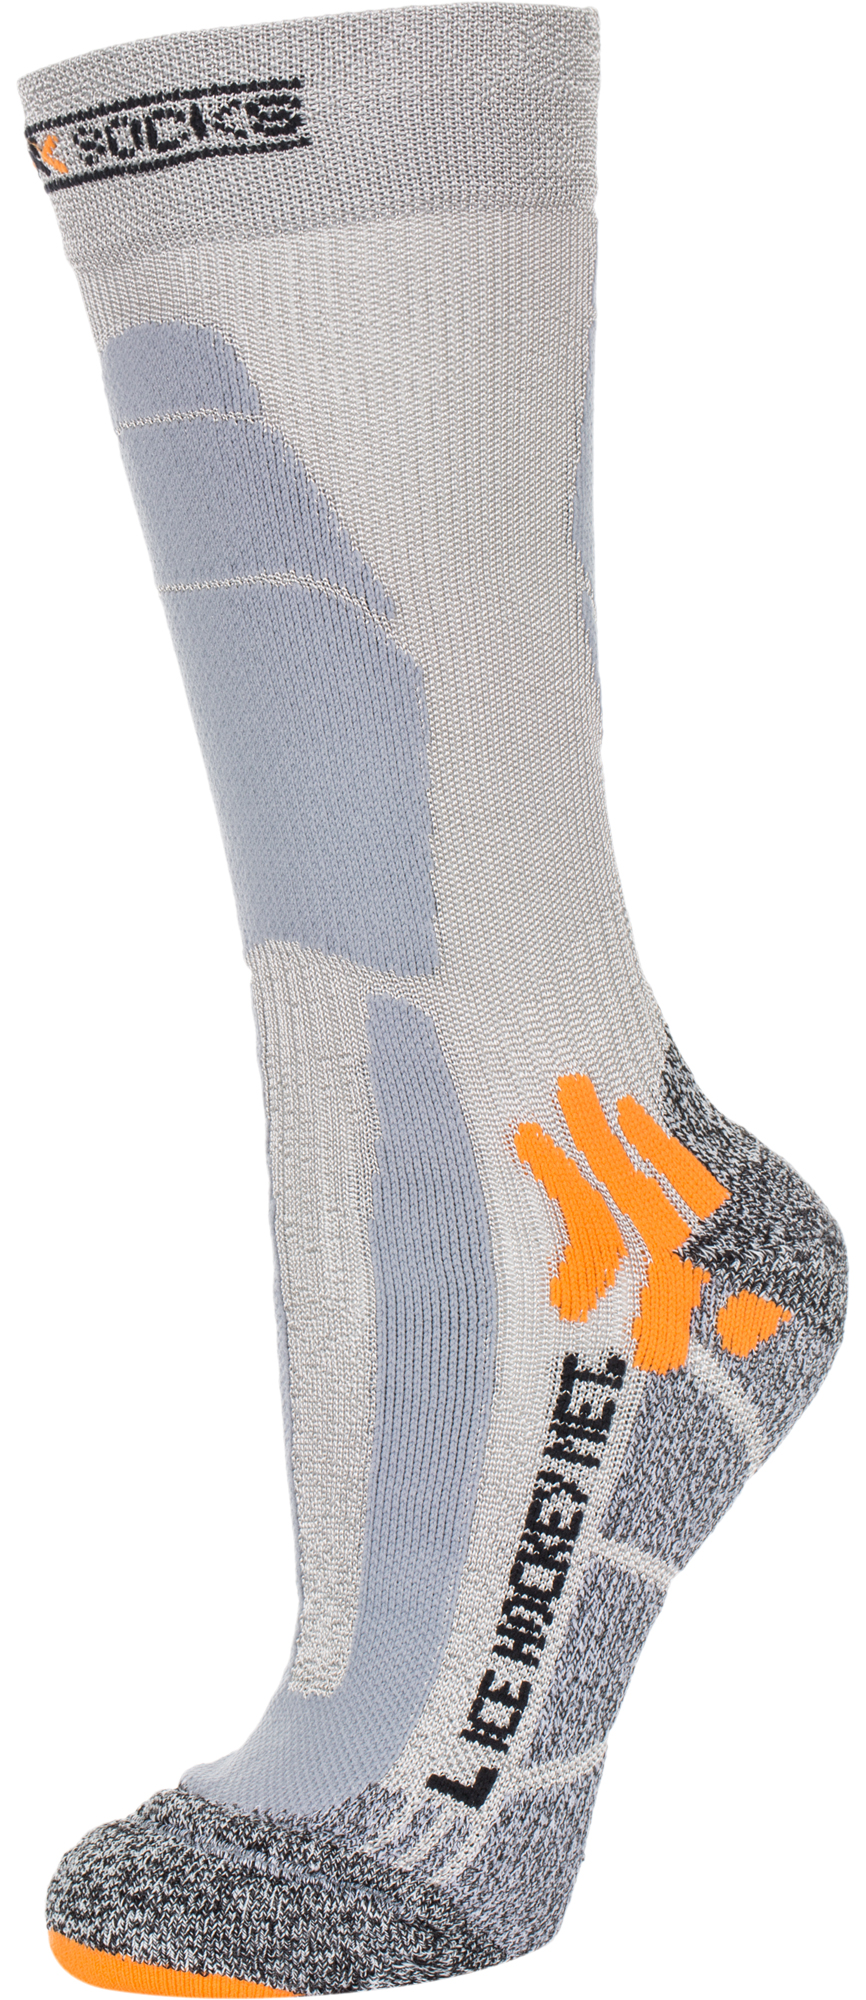 X-Socks Носки X-Socks, 1 пара, размер 45-47 носки shweyka logo snowboard socks black dark grey